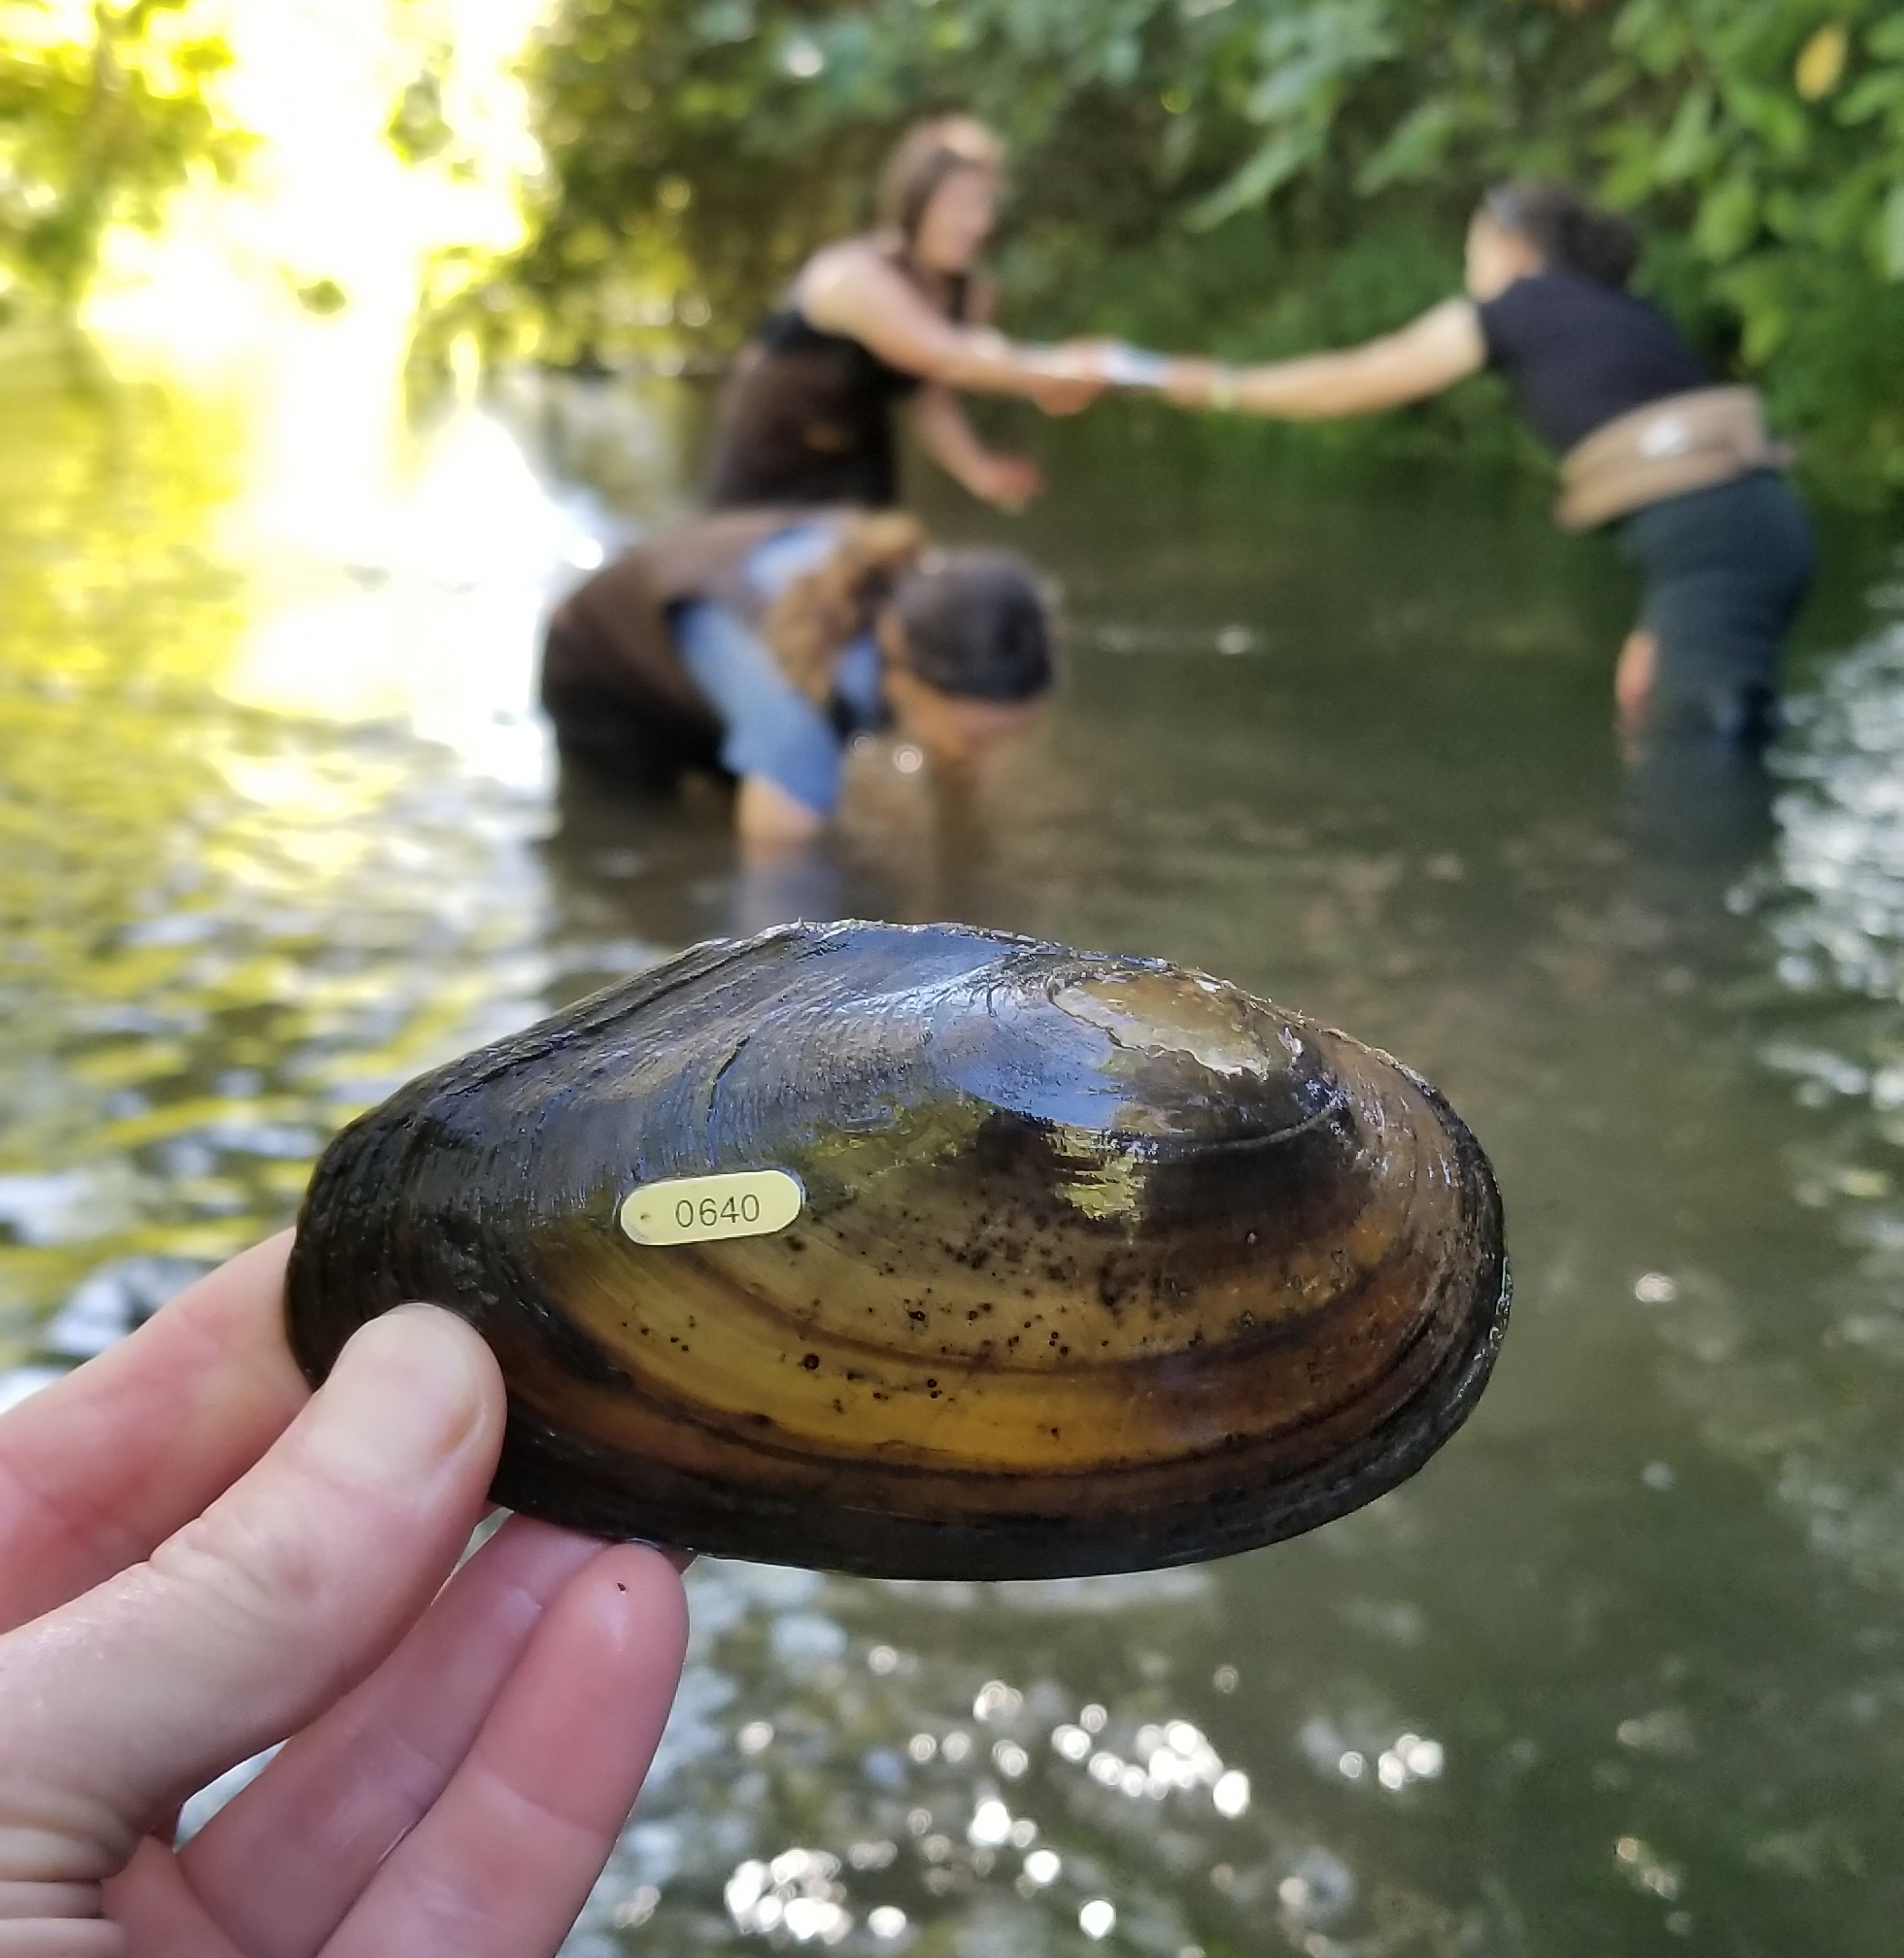 Women wading in a thigh-deep stream pass a freshwater mussel (a large shell) between them.